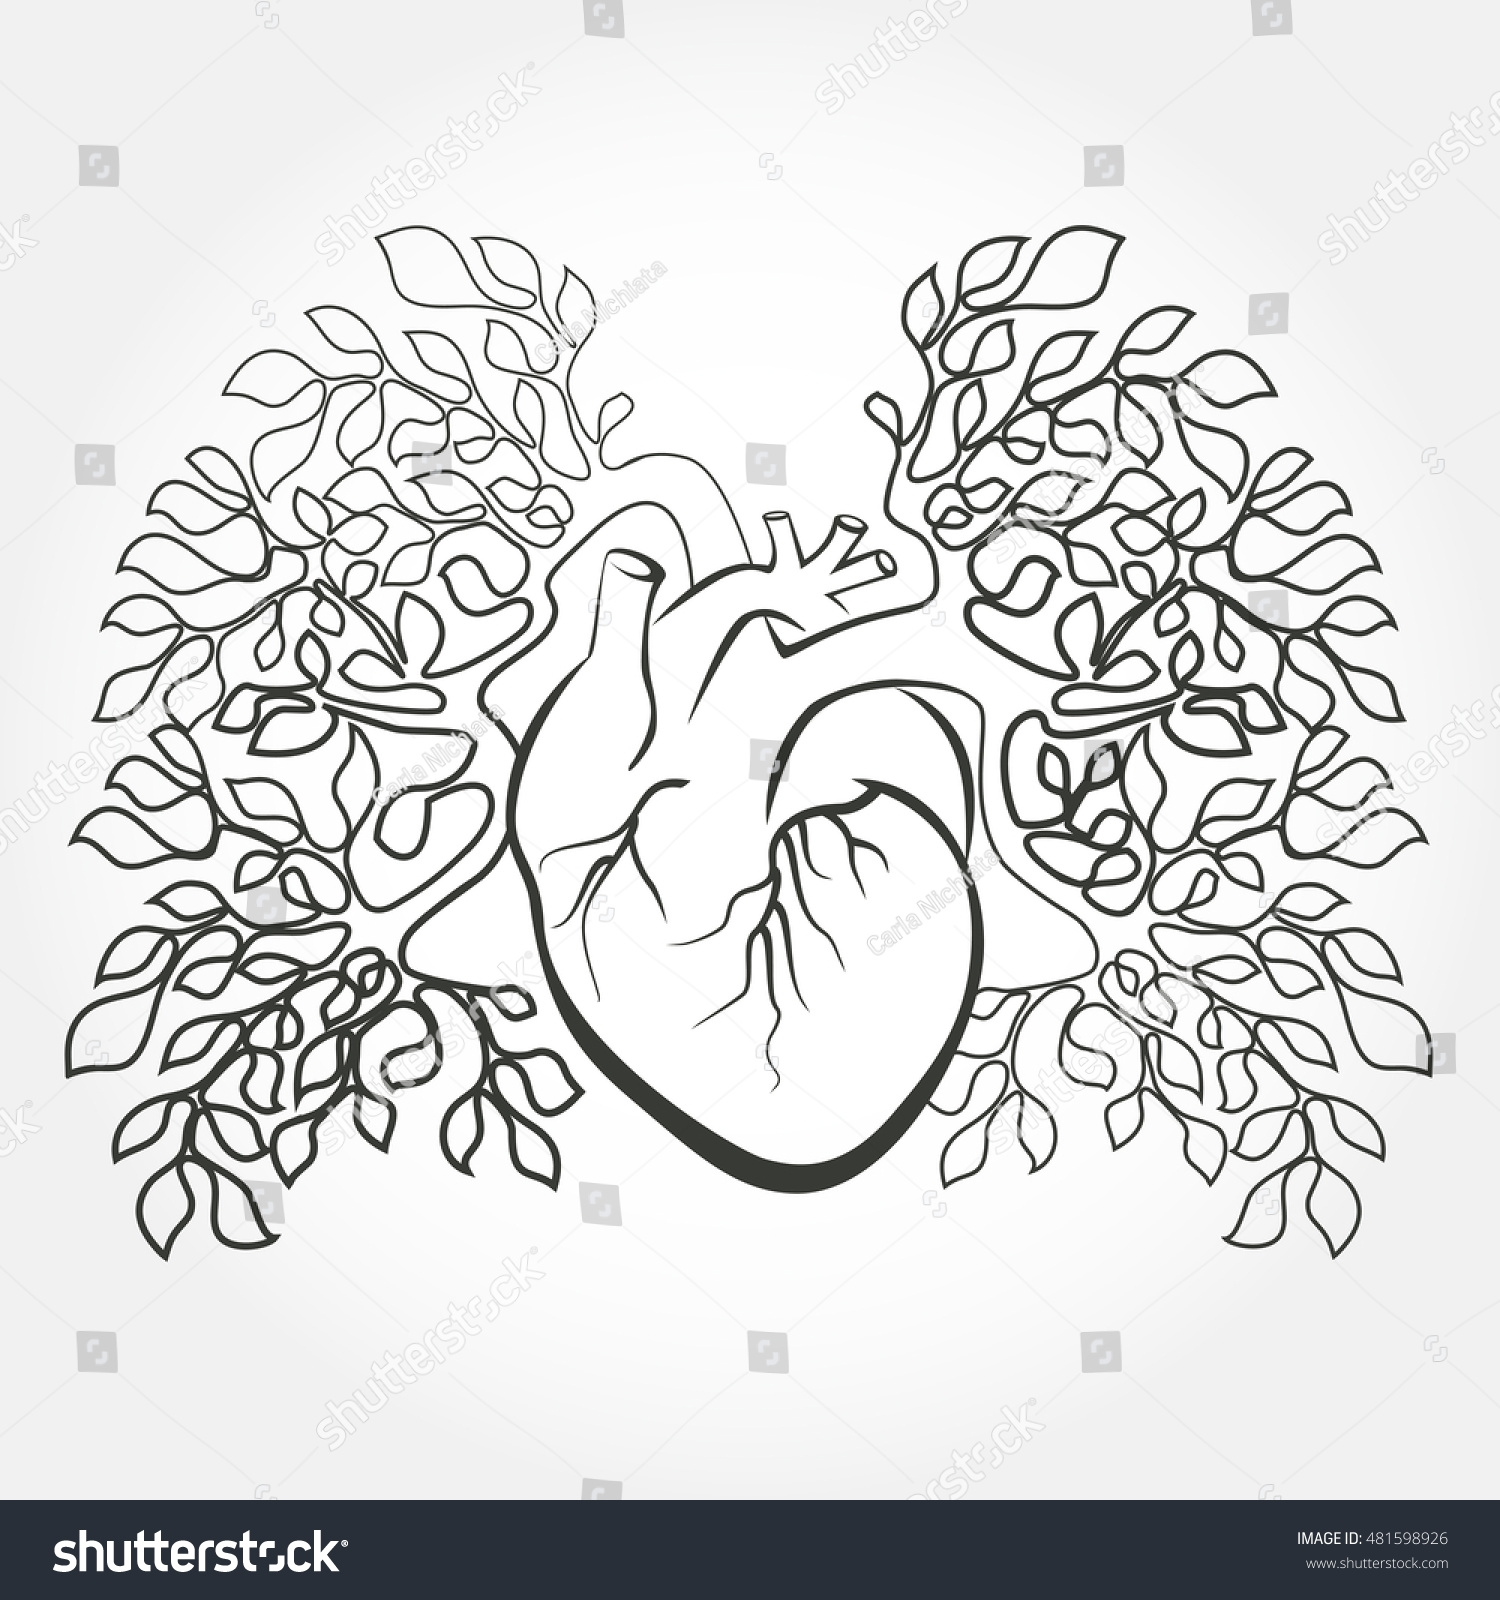 Human Heart Coloring Pages At Getcolorings